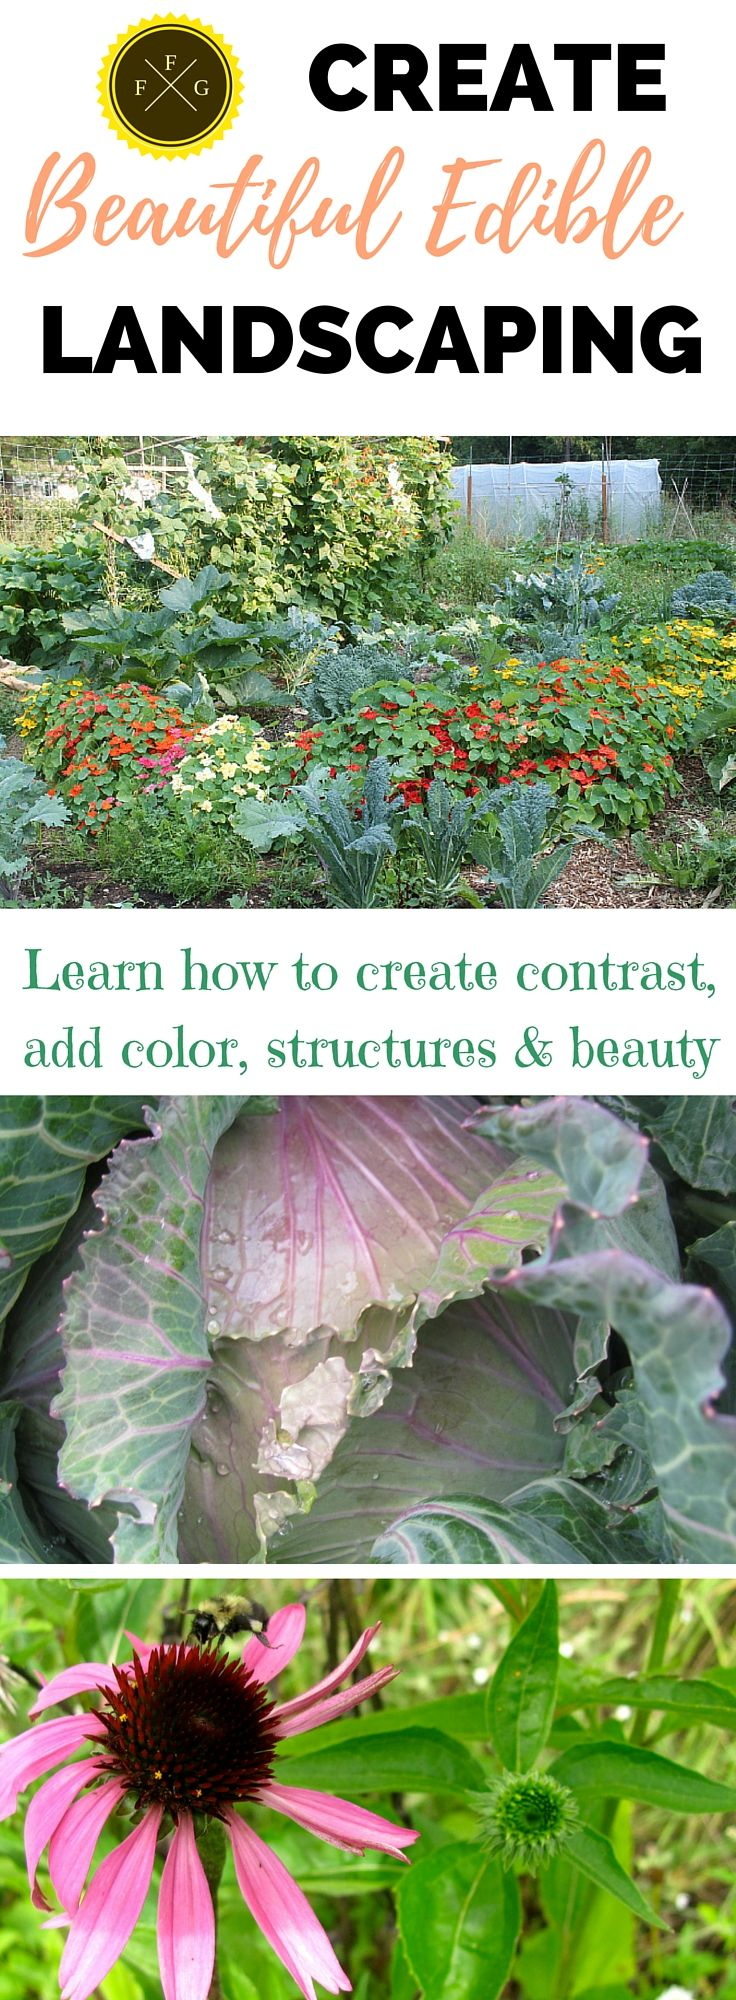 514 best Garden wish list and ideas images on Pinterest